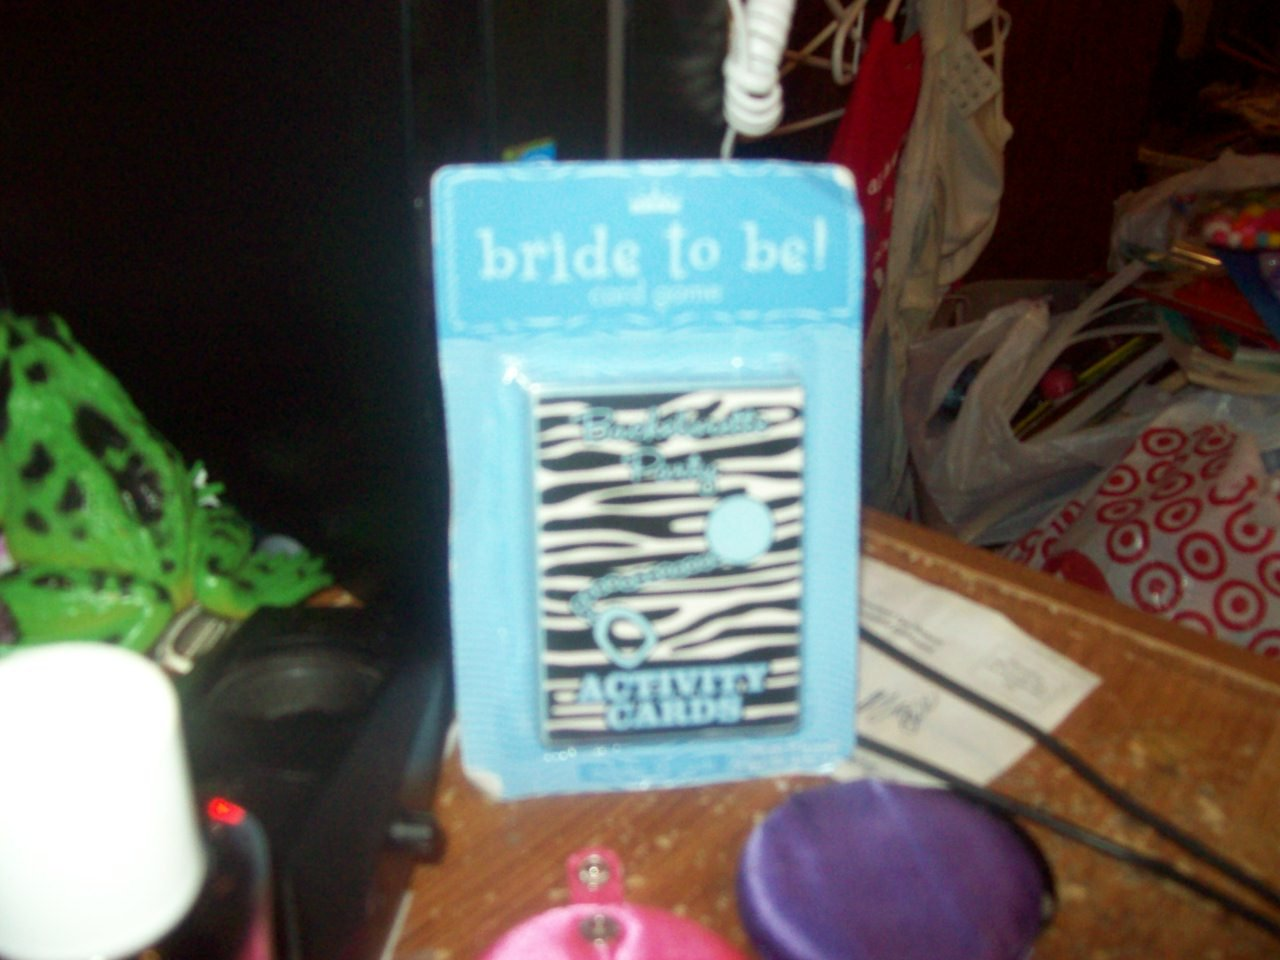 Card Game Activity Game Noteworthy Bride to Be